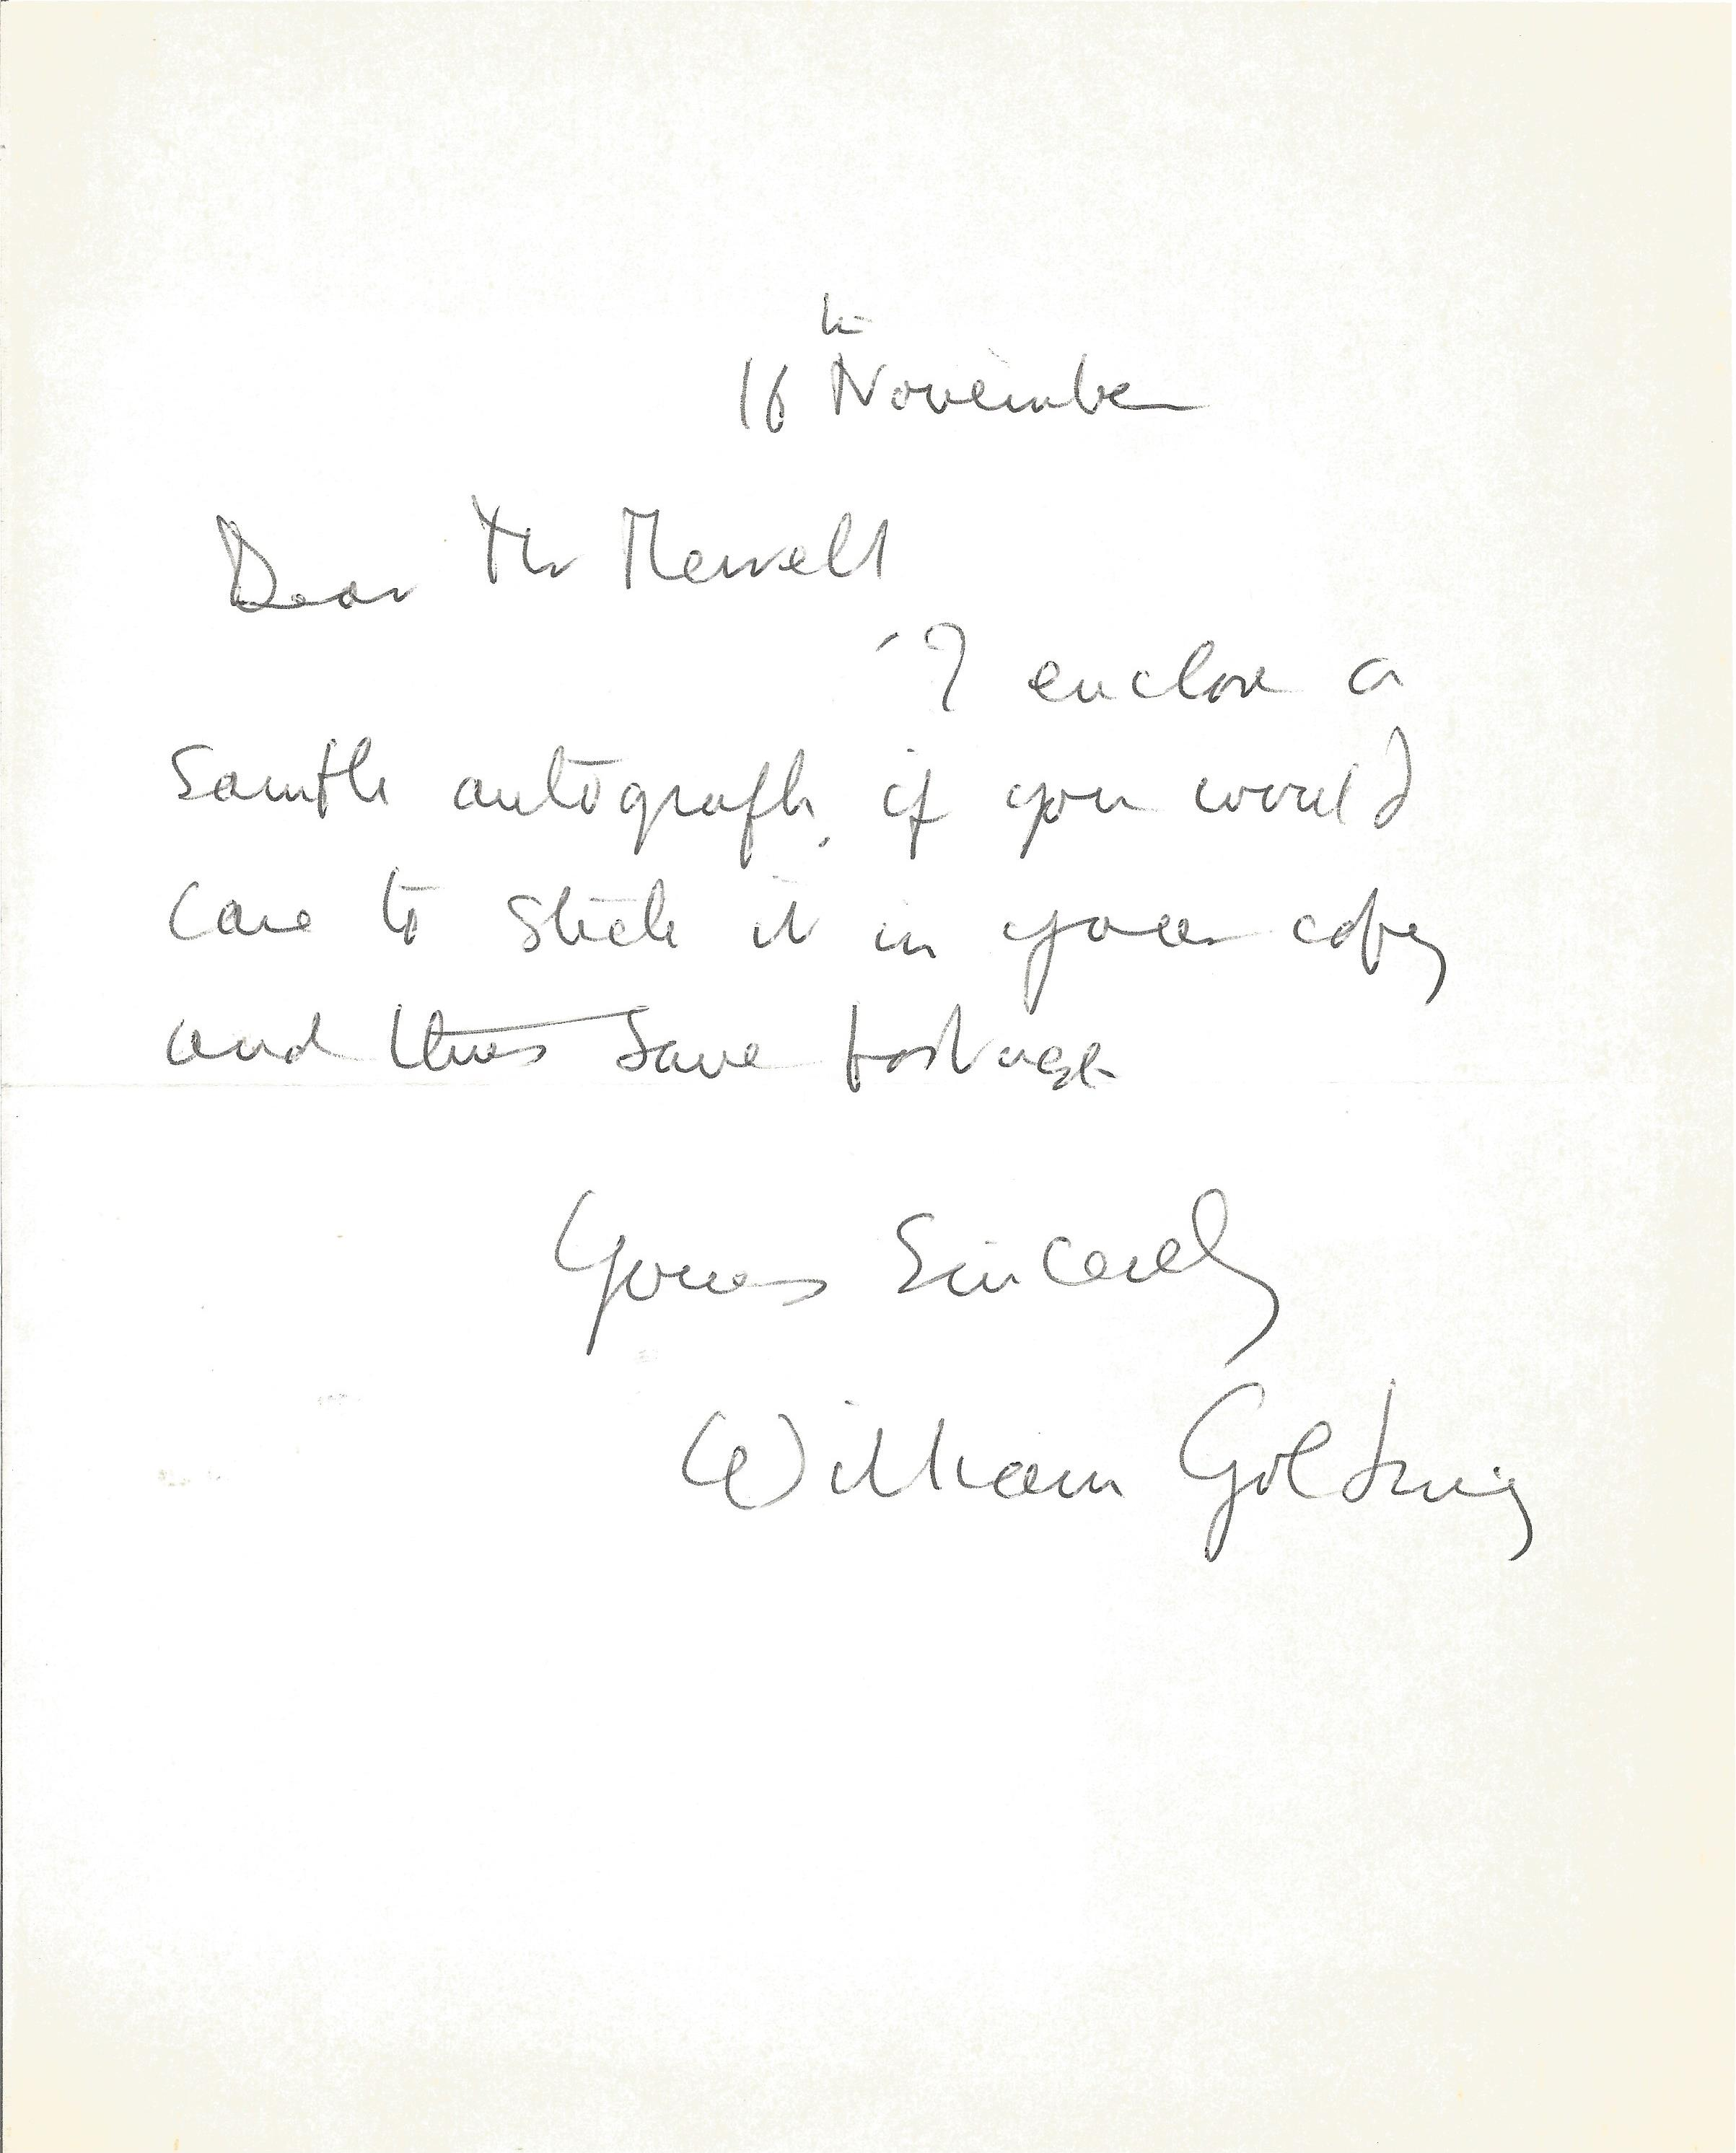 William Golding ALS. Novelist. Good condition. All autographs come with a Certificate of